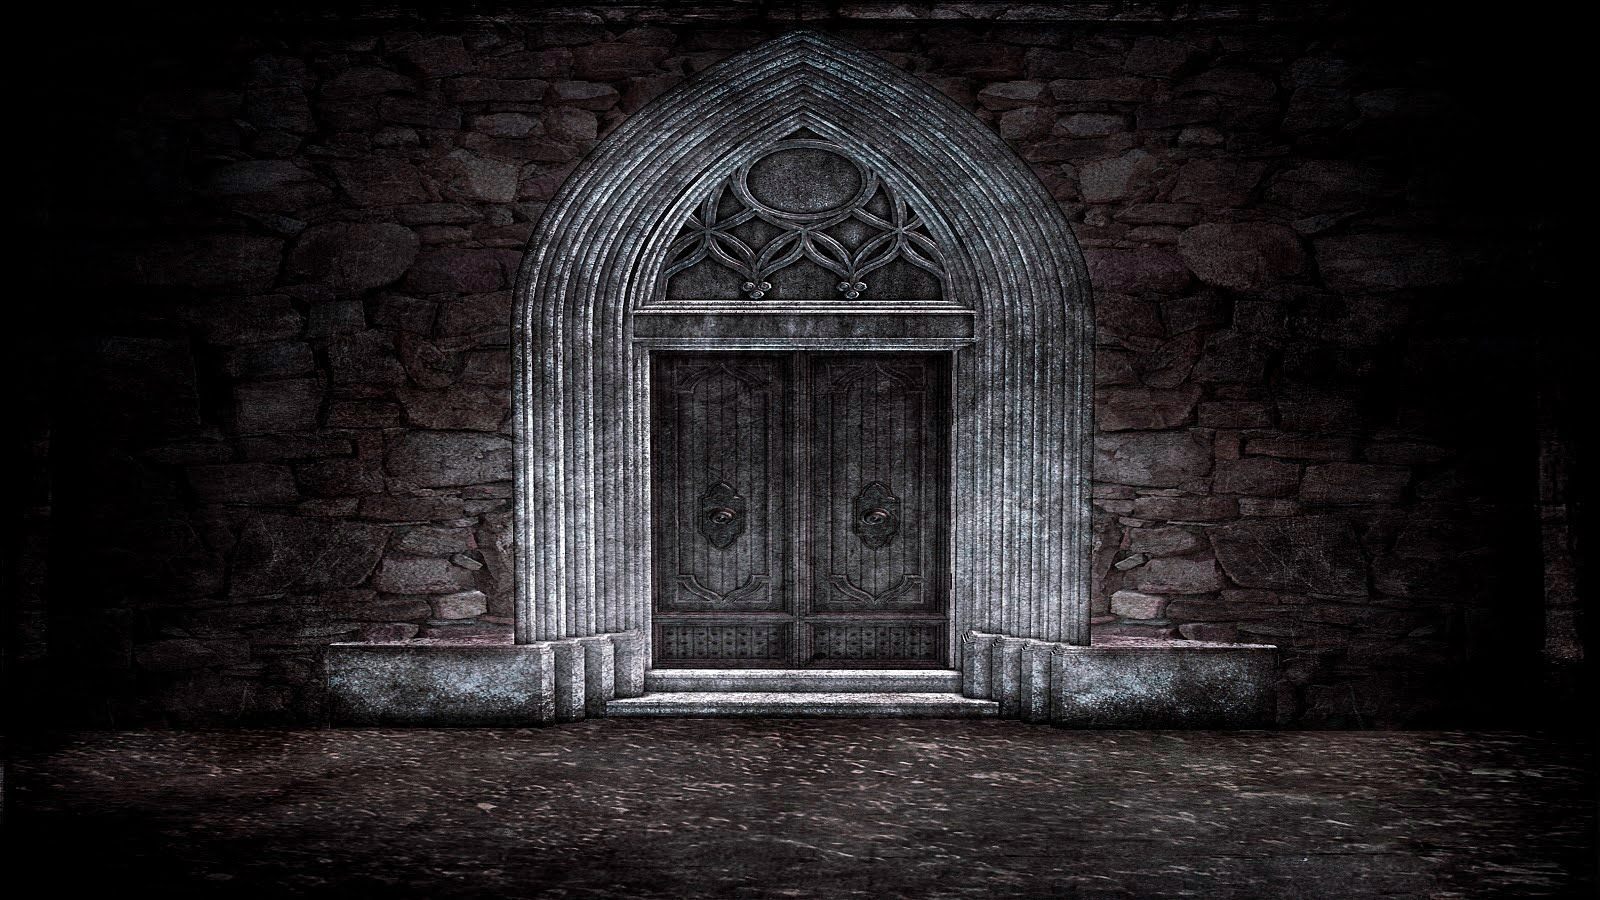 Gothic Music The Hidden Chamber Gothic Music Interesting Art Gothic